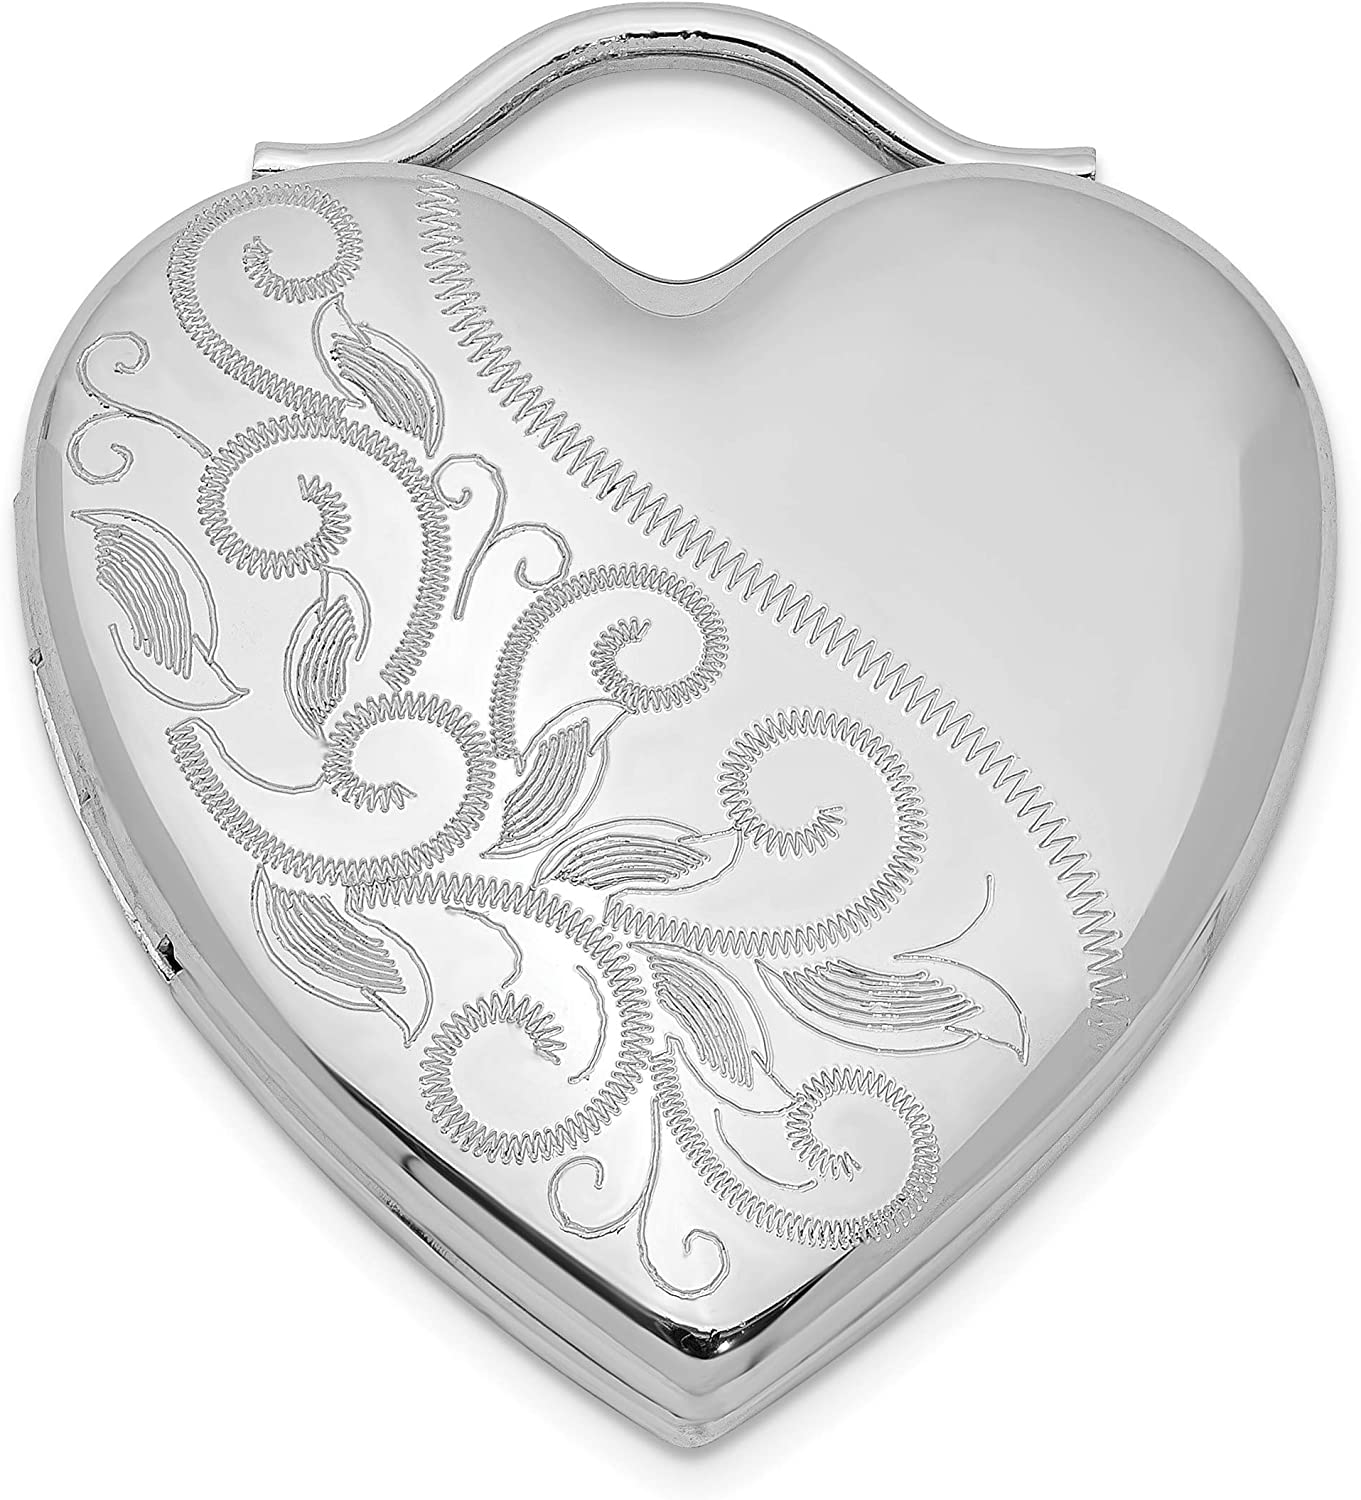 Sterling Silver NEW 24mm Etched Locket Heart Max 52% OFF